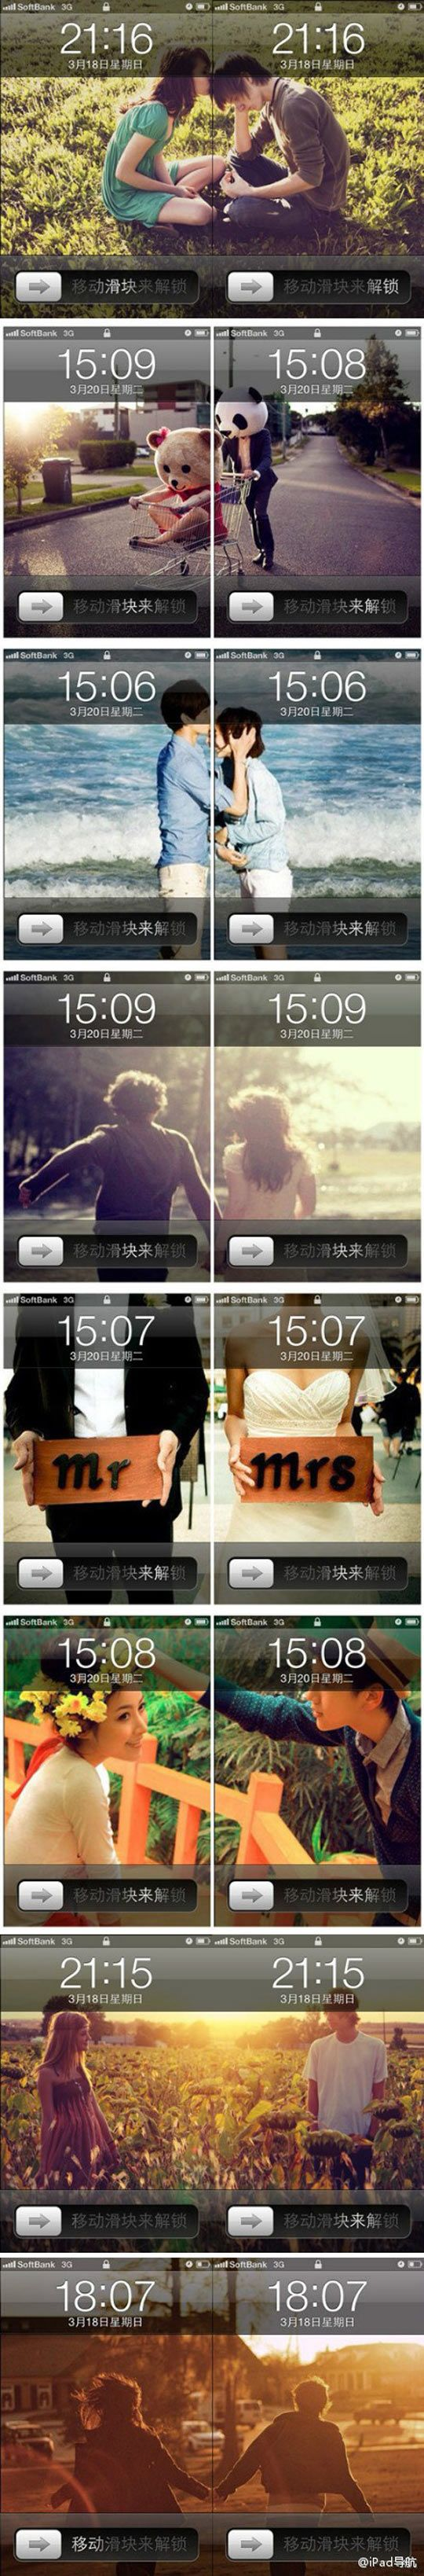 iPhone wallpapers for couples… two years ago I would have thought it was dumb and cheesy, now I think We need to do that asap *sigh*